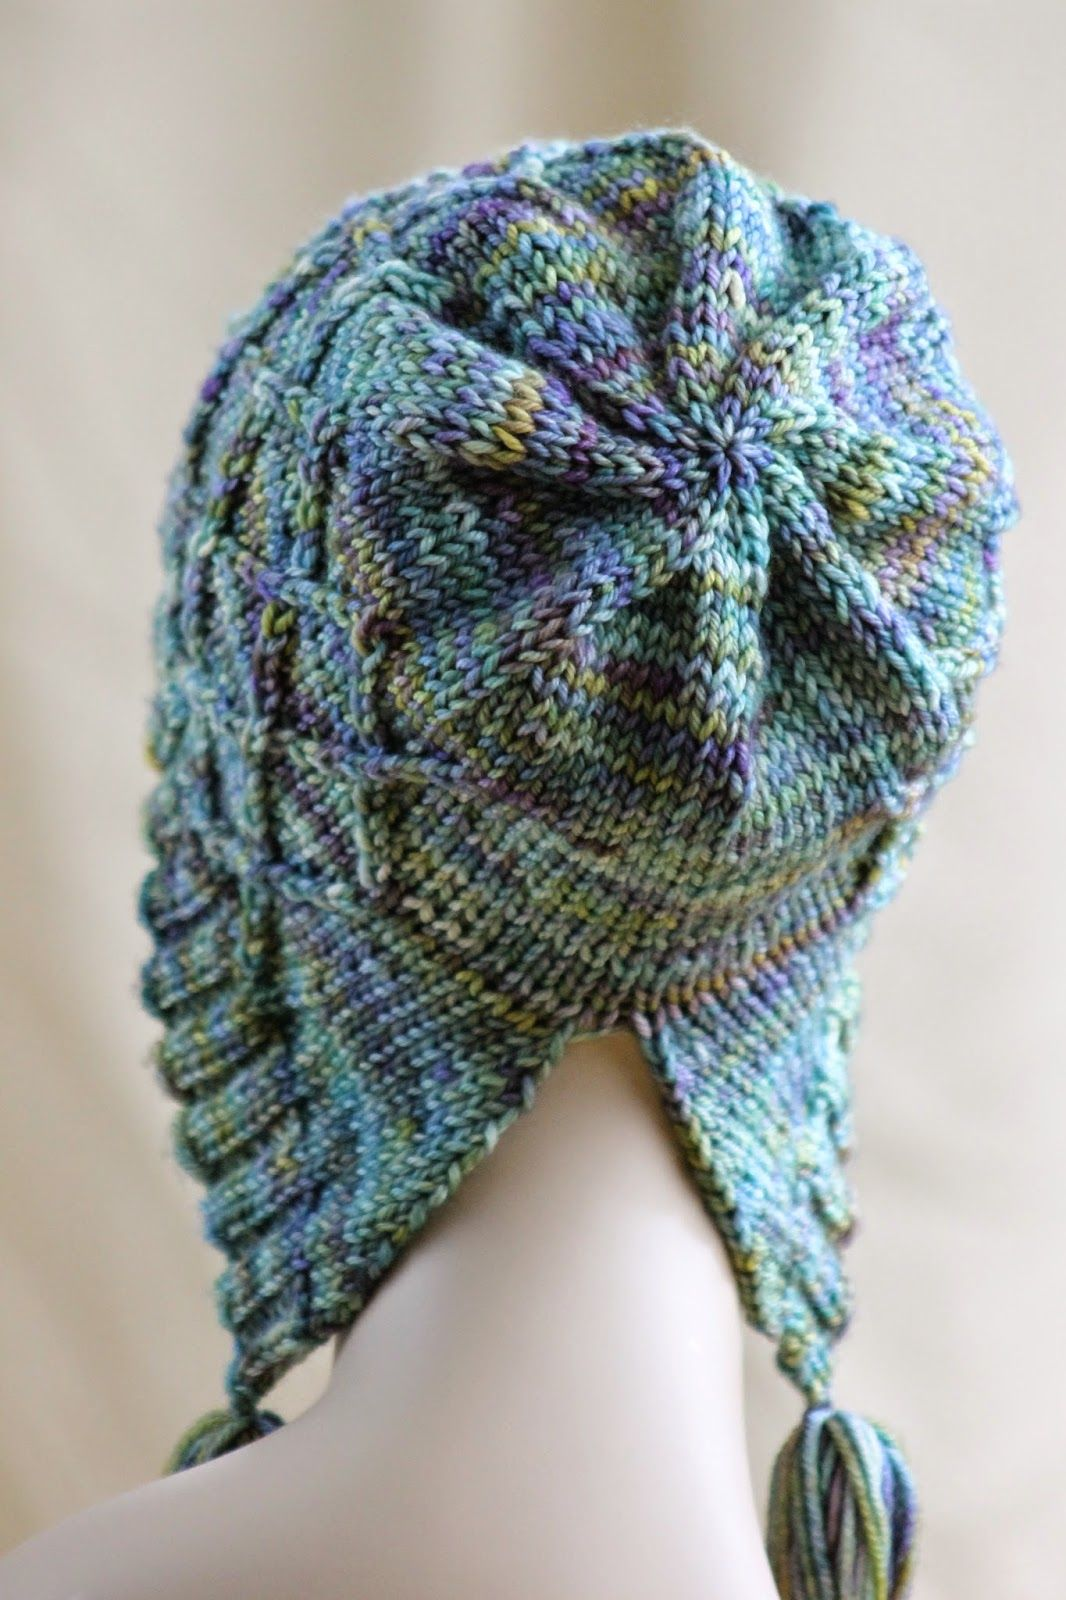 Iris Bloom Bonnet #freeknittingpatterns